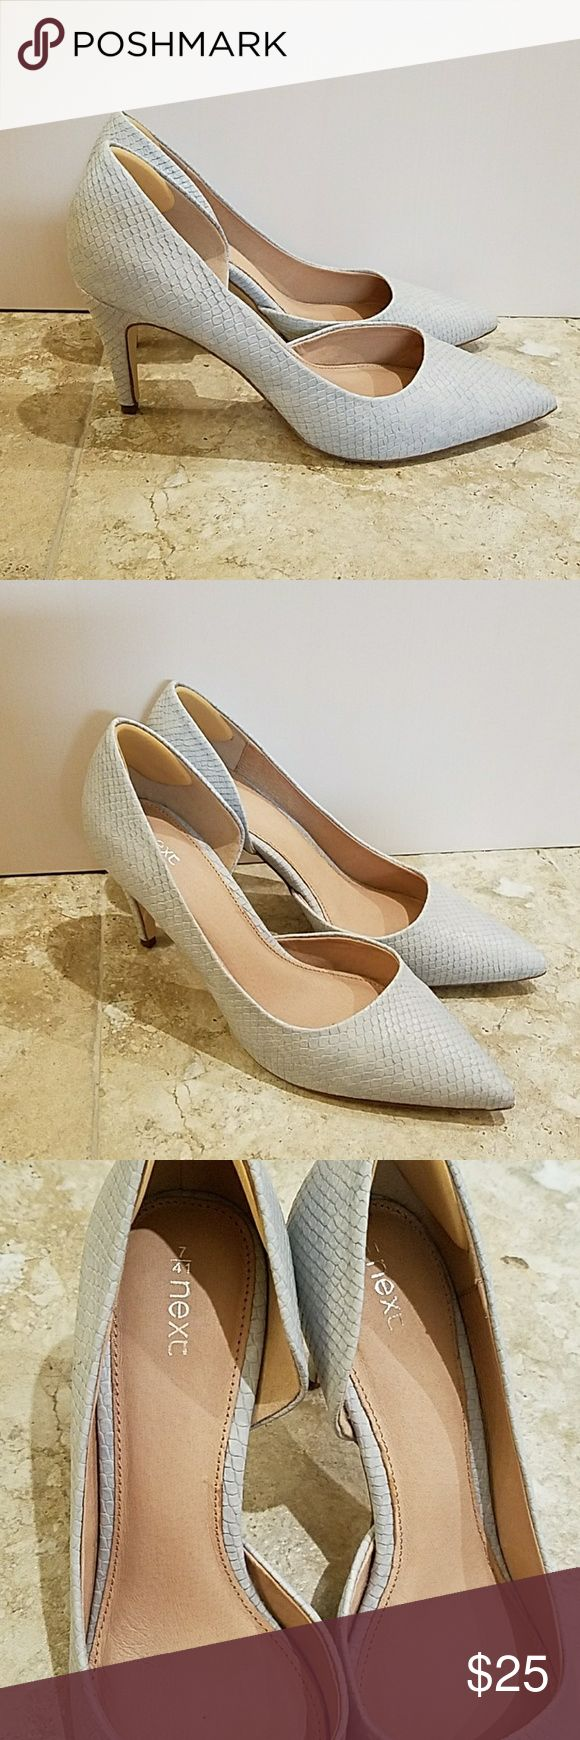 Final Markdown!🙄 Pale blue point court heels Lovely croc effect pale blue court shoes.  Almost silver/grey effect. Worn only twice!  In Pristine condition with very minimal wear on soles (pictured).  Just trying to downsize my wardrobe nothing wrong with these shoes whatever.  NEXT brand from UK.  A very well made pair of shoes you will get a lot of wear out of these!  Happy poshing☺ Next Shoes Heels